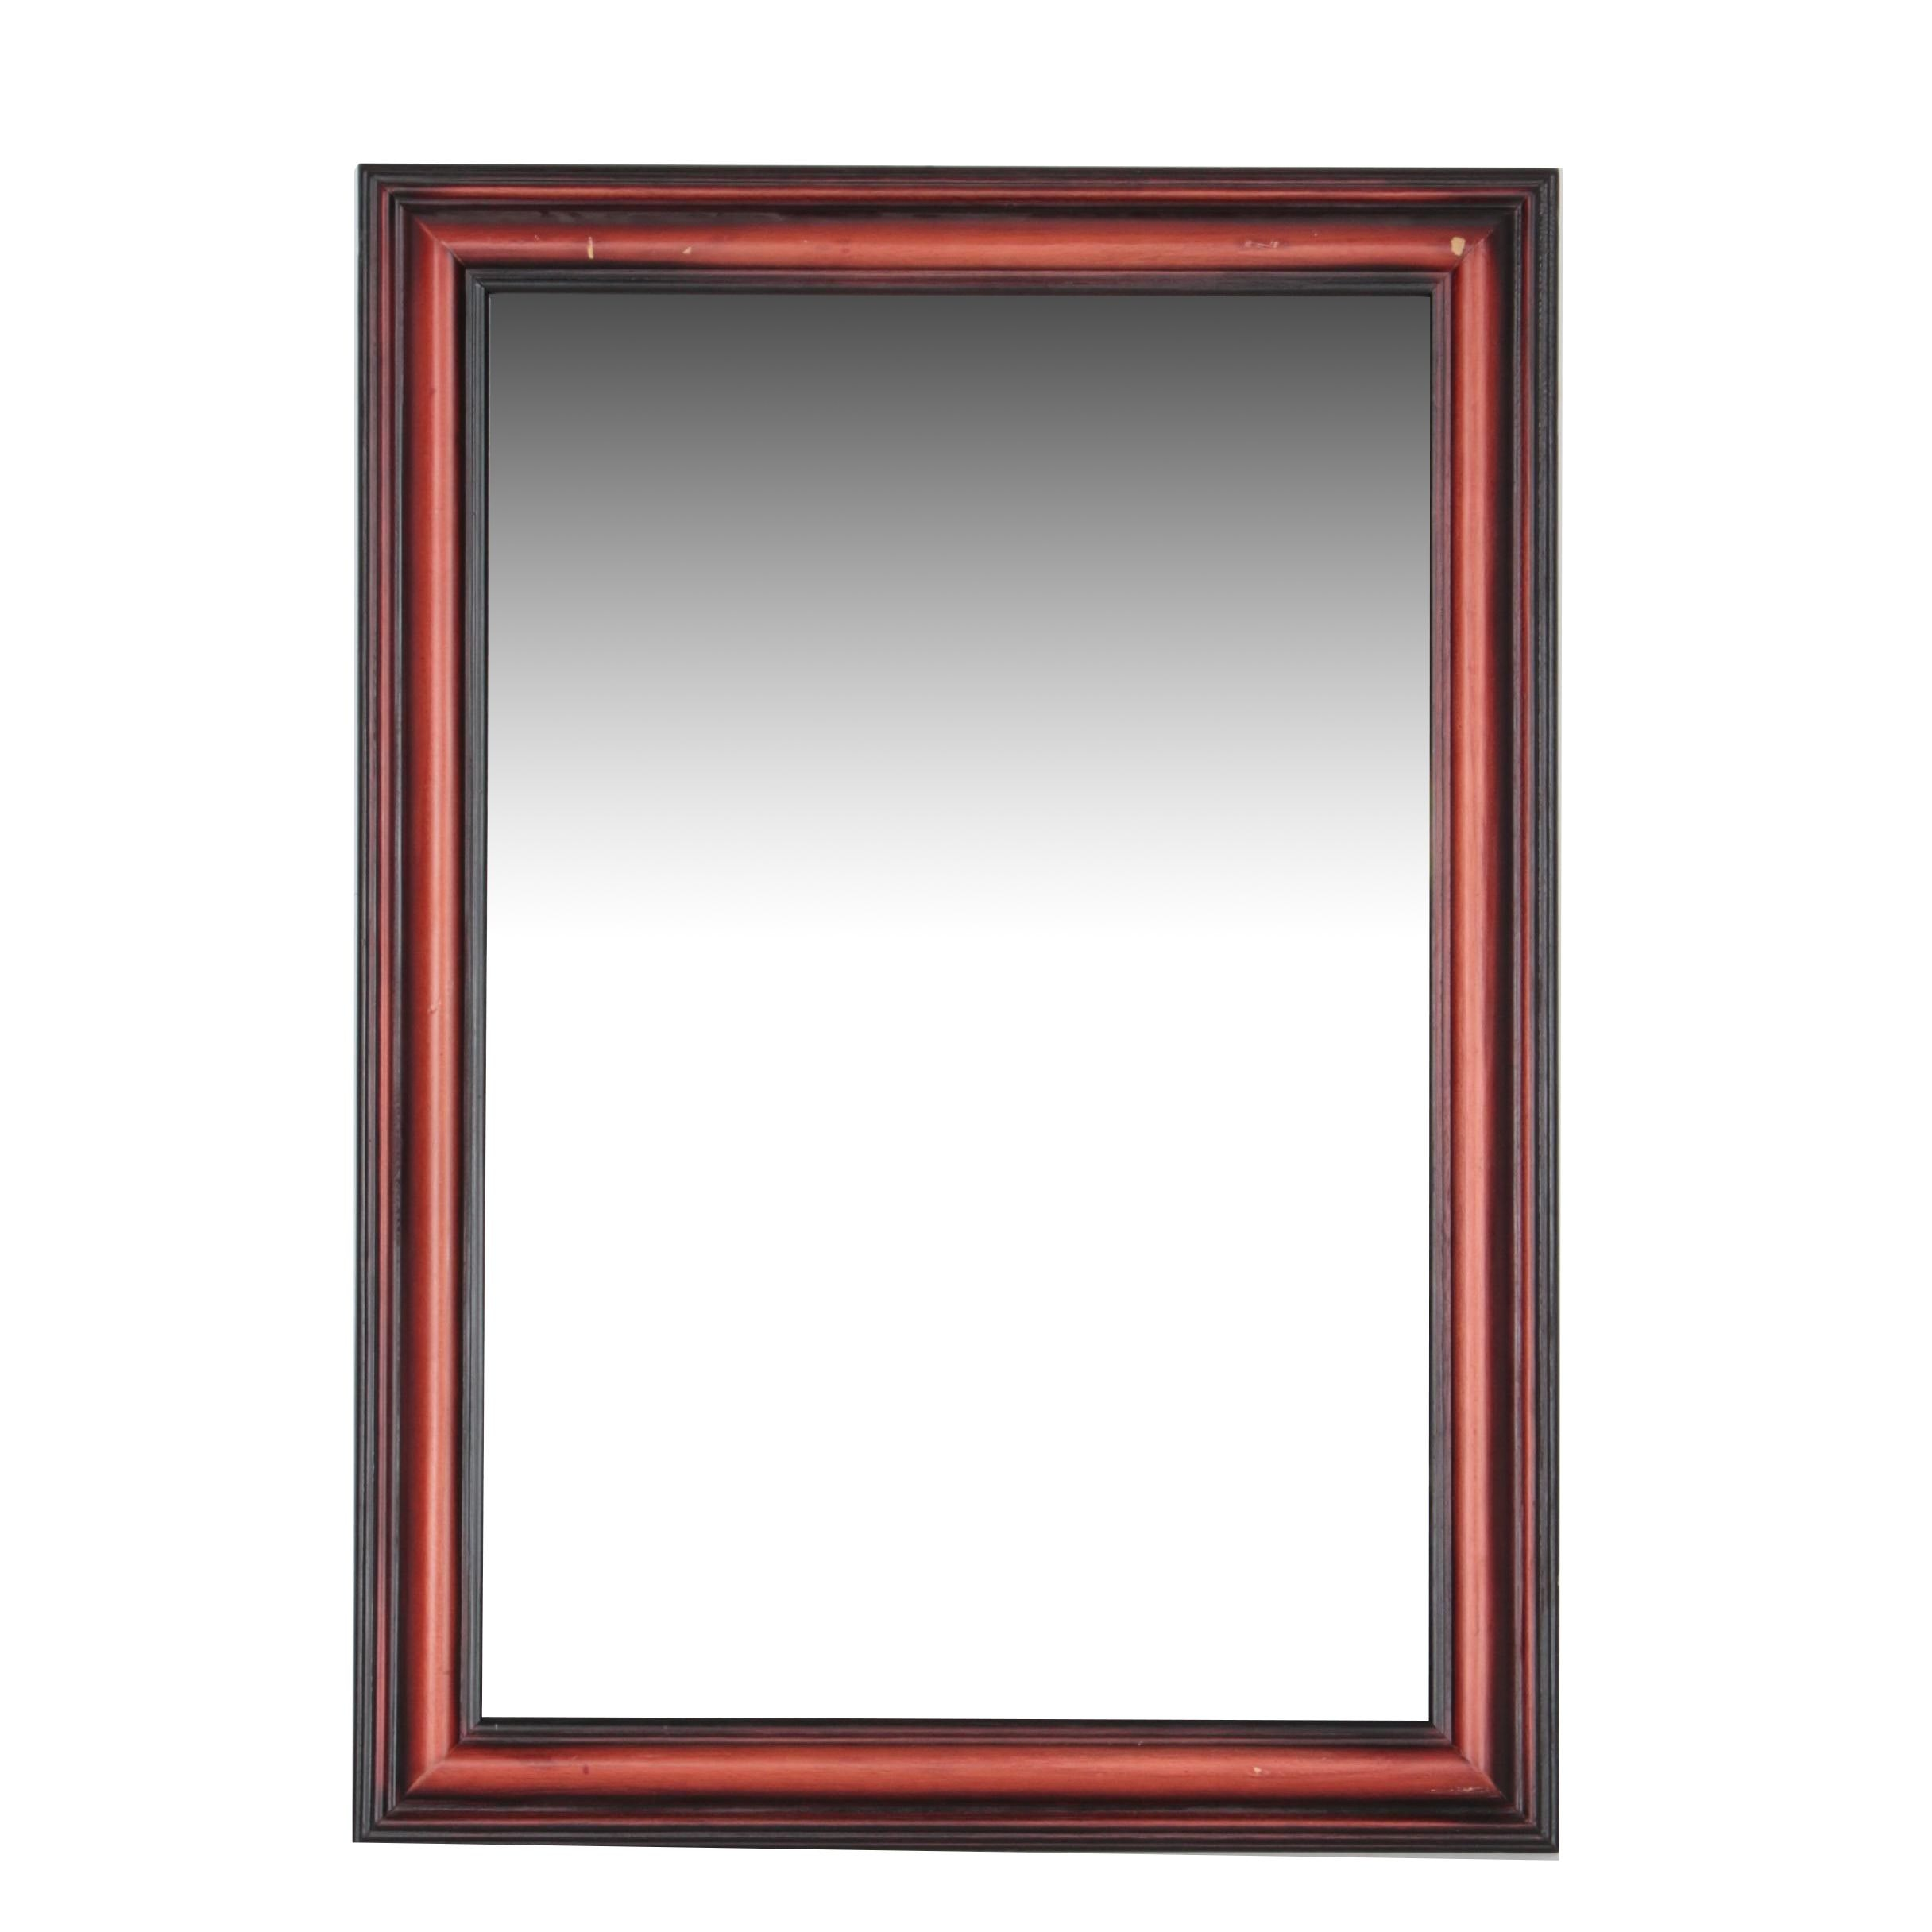 20th Century American Console Wall Mirror